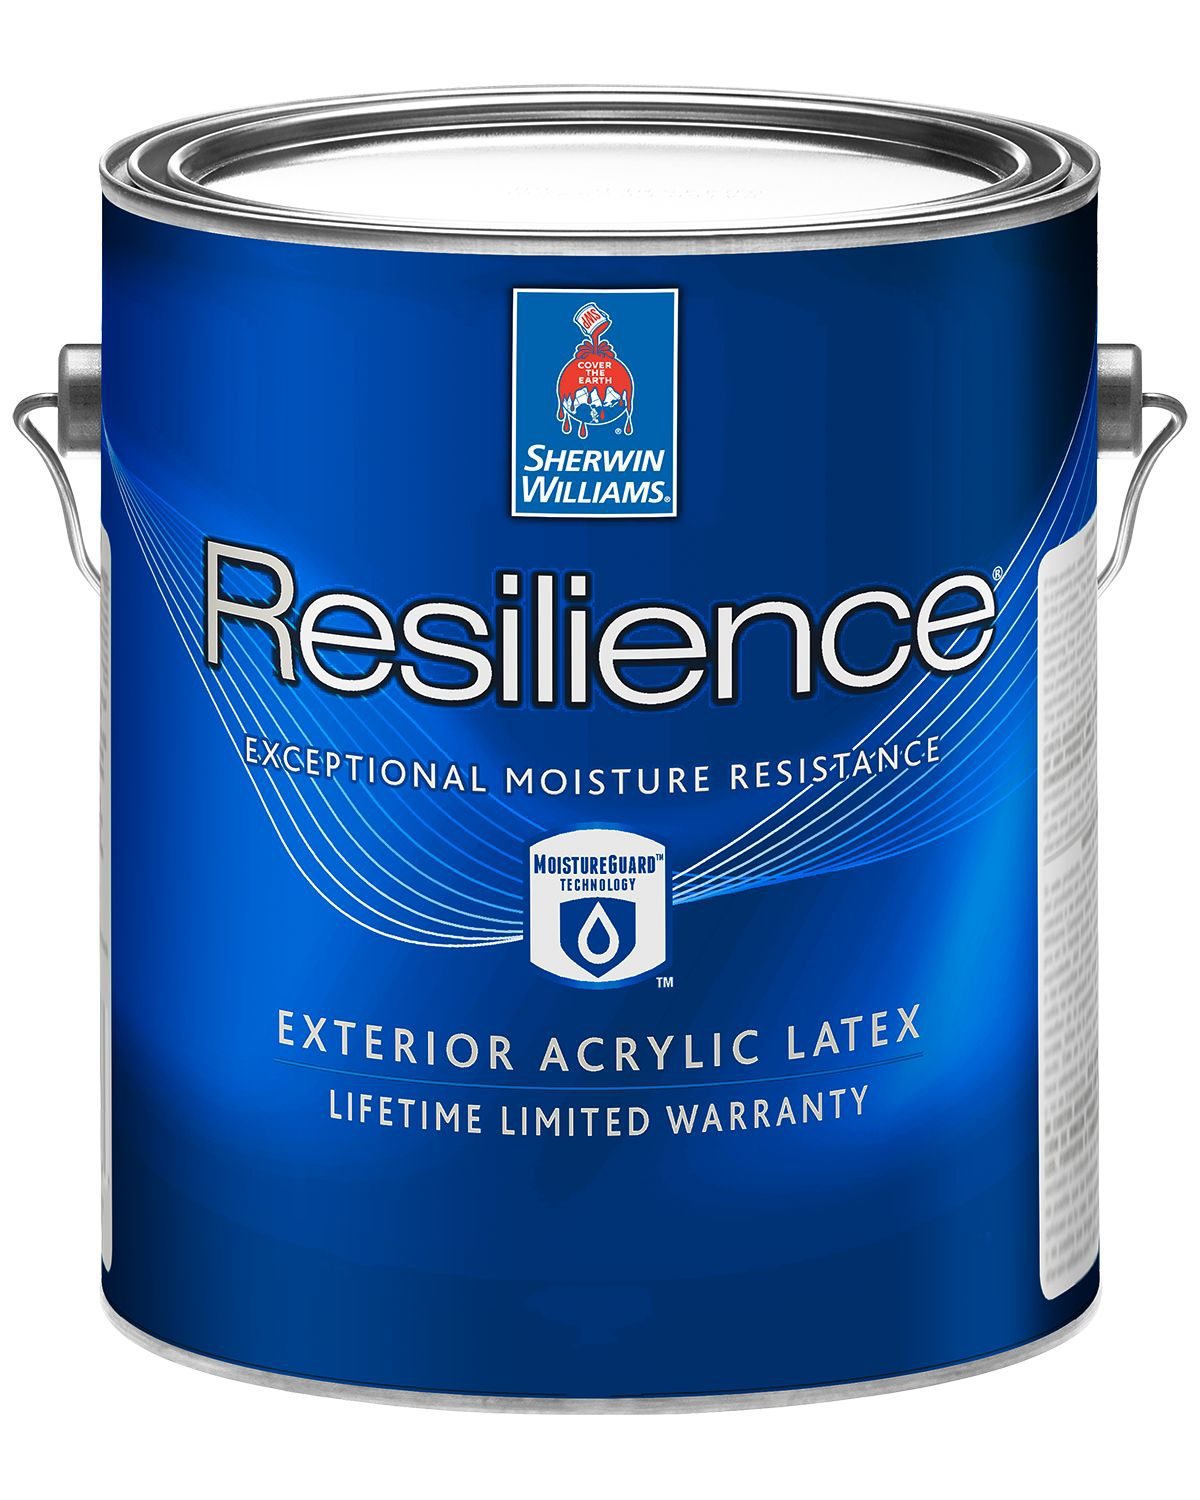 Resilence paint can